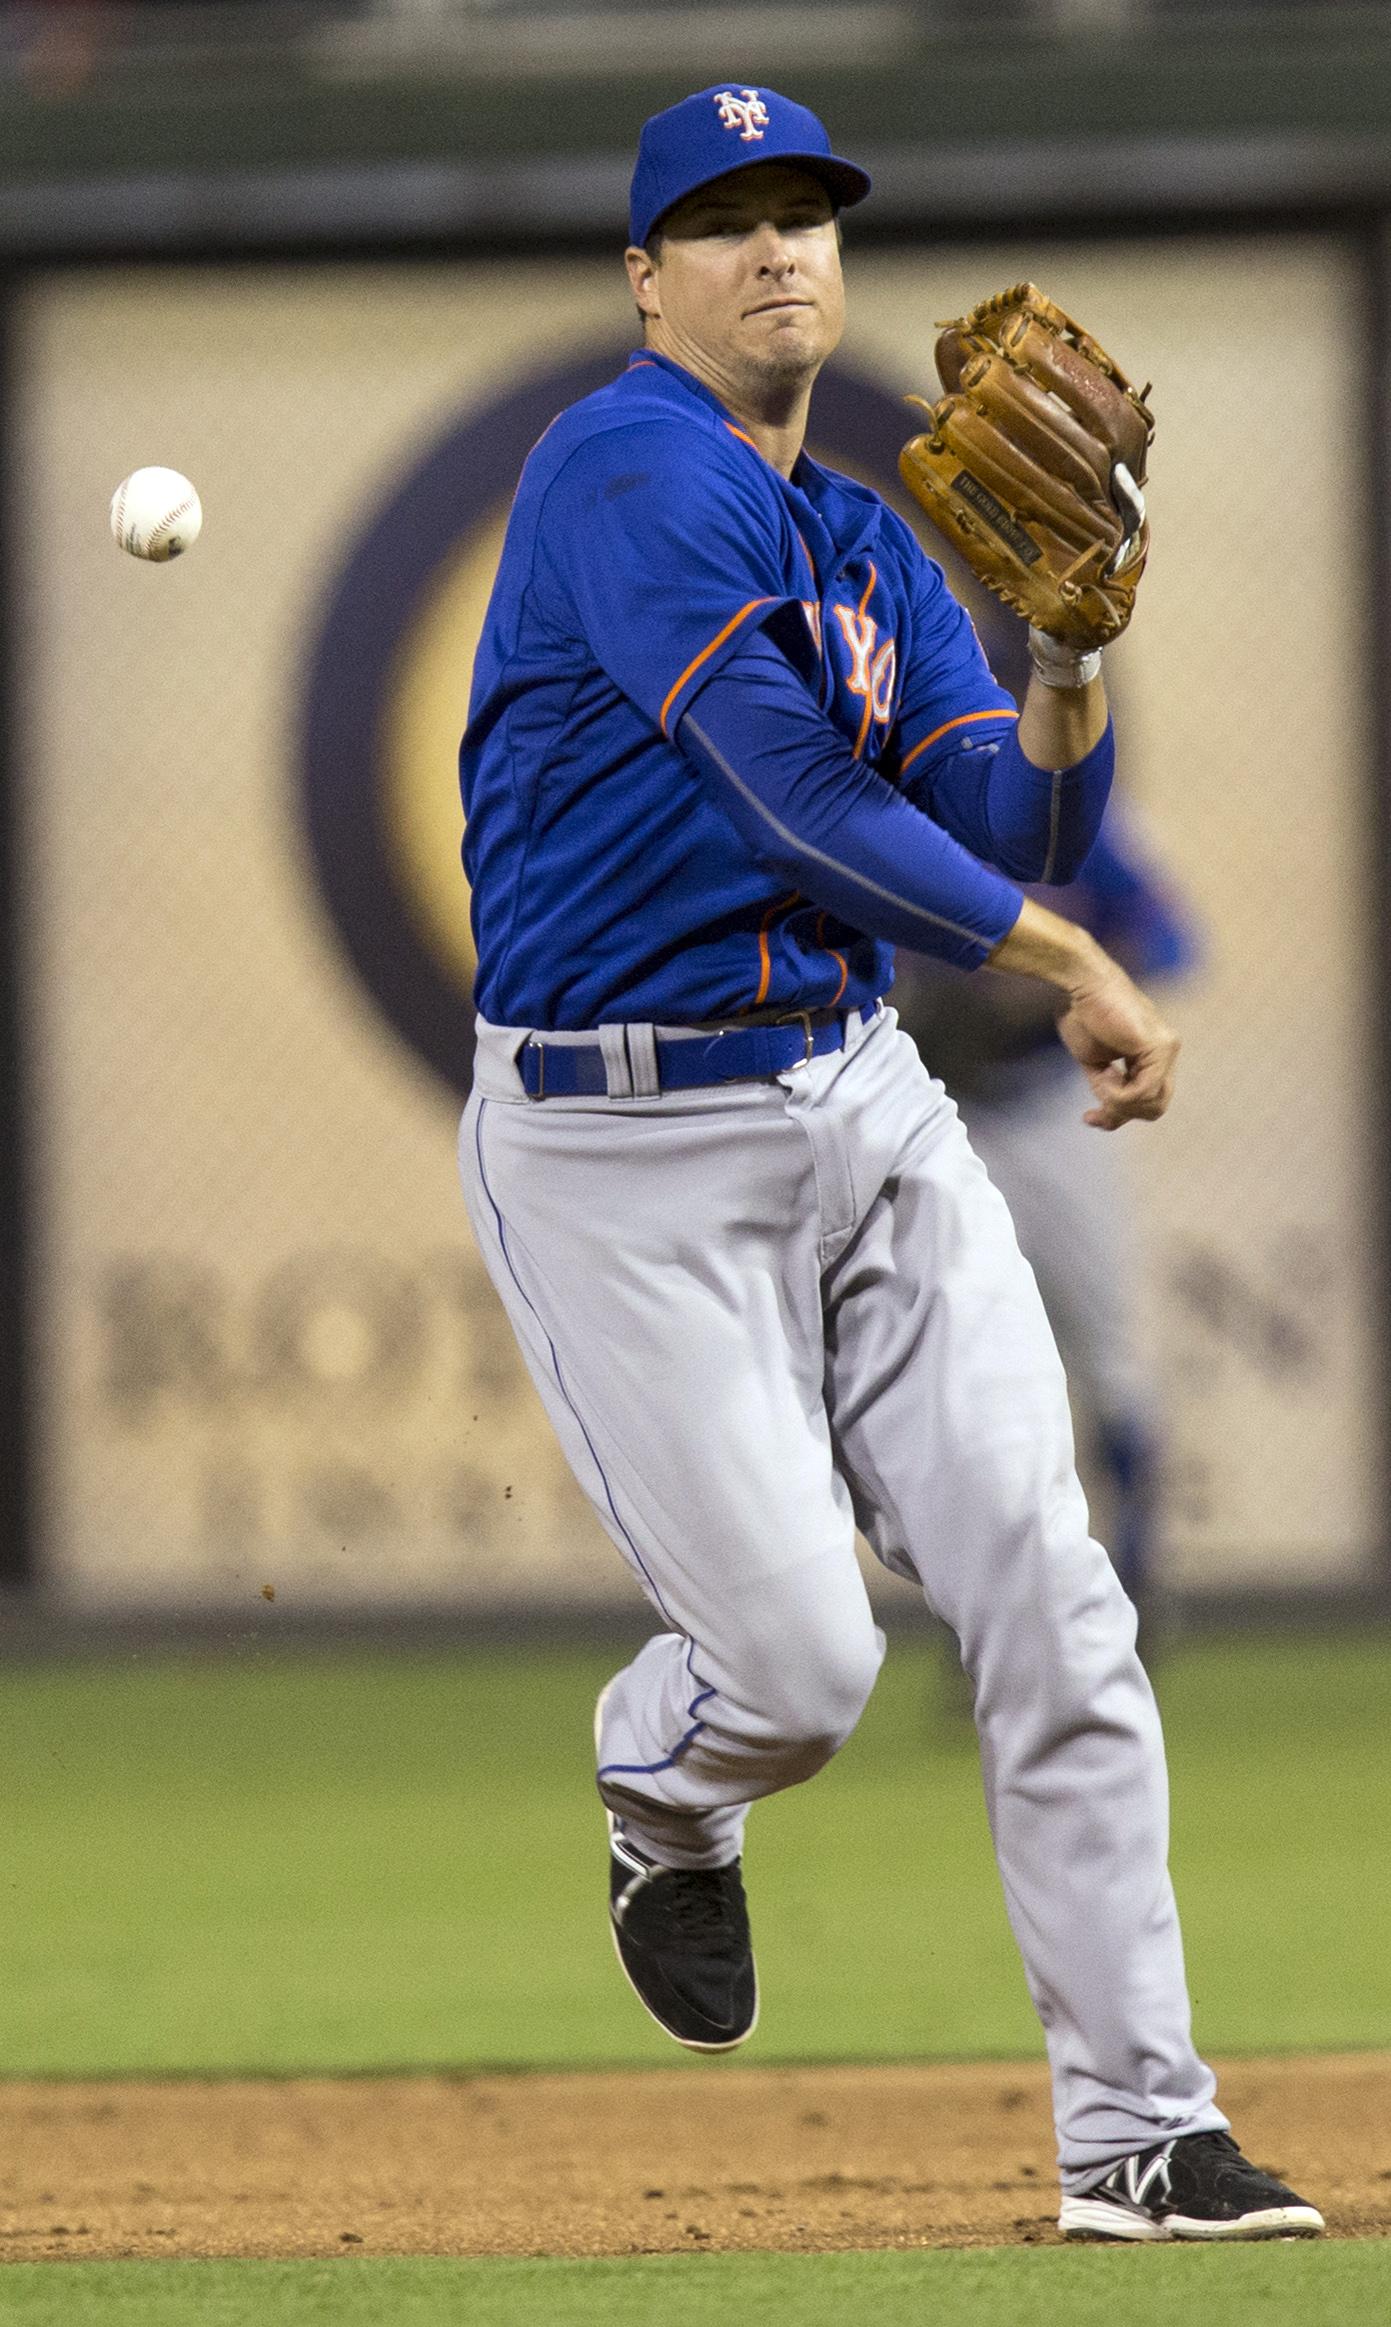 New York Mets second baseman Kelly Johnson bobbles the ball on a base hit by Philadelphia Phillies' Odubel Herrera in the third inning of a baseball game, Tuesday, Aug. 25, 2015, in Philadelphia. (AP Photo/Laurence Kesterson)